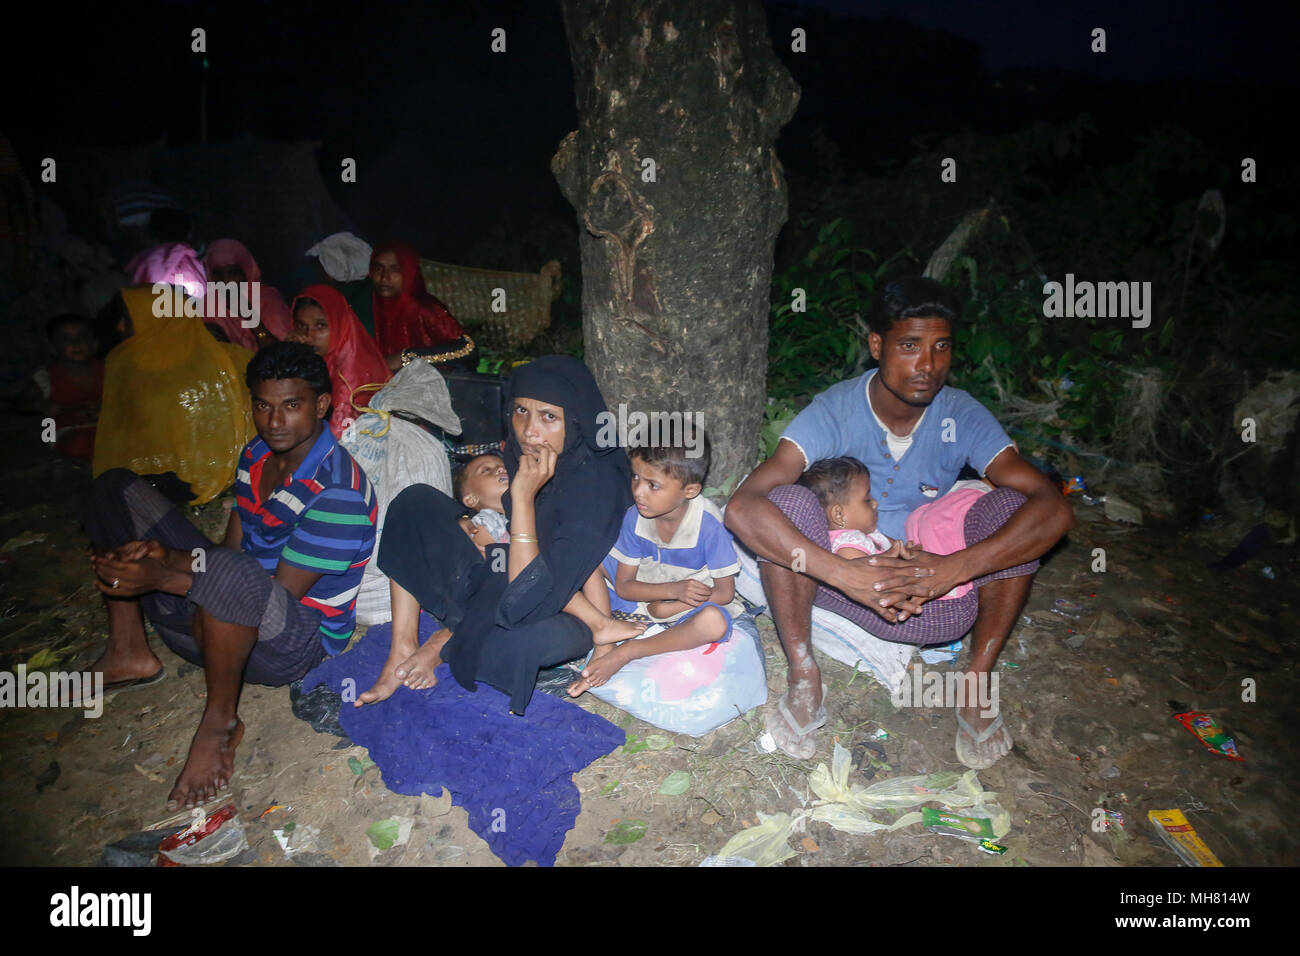 Rohingya refugees take shelter under open sky beside a road at Teknaf after entering Bangladesh through border point at Ukhia in Cox's Bazar, Banglad - Stock Image